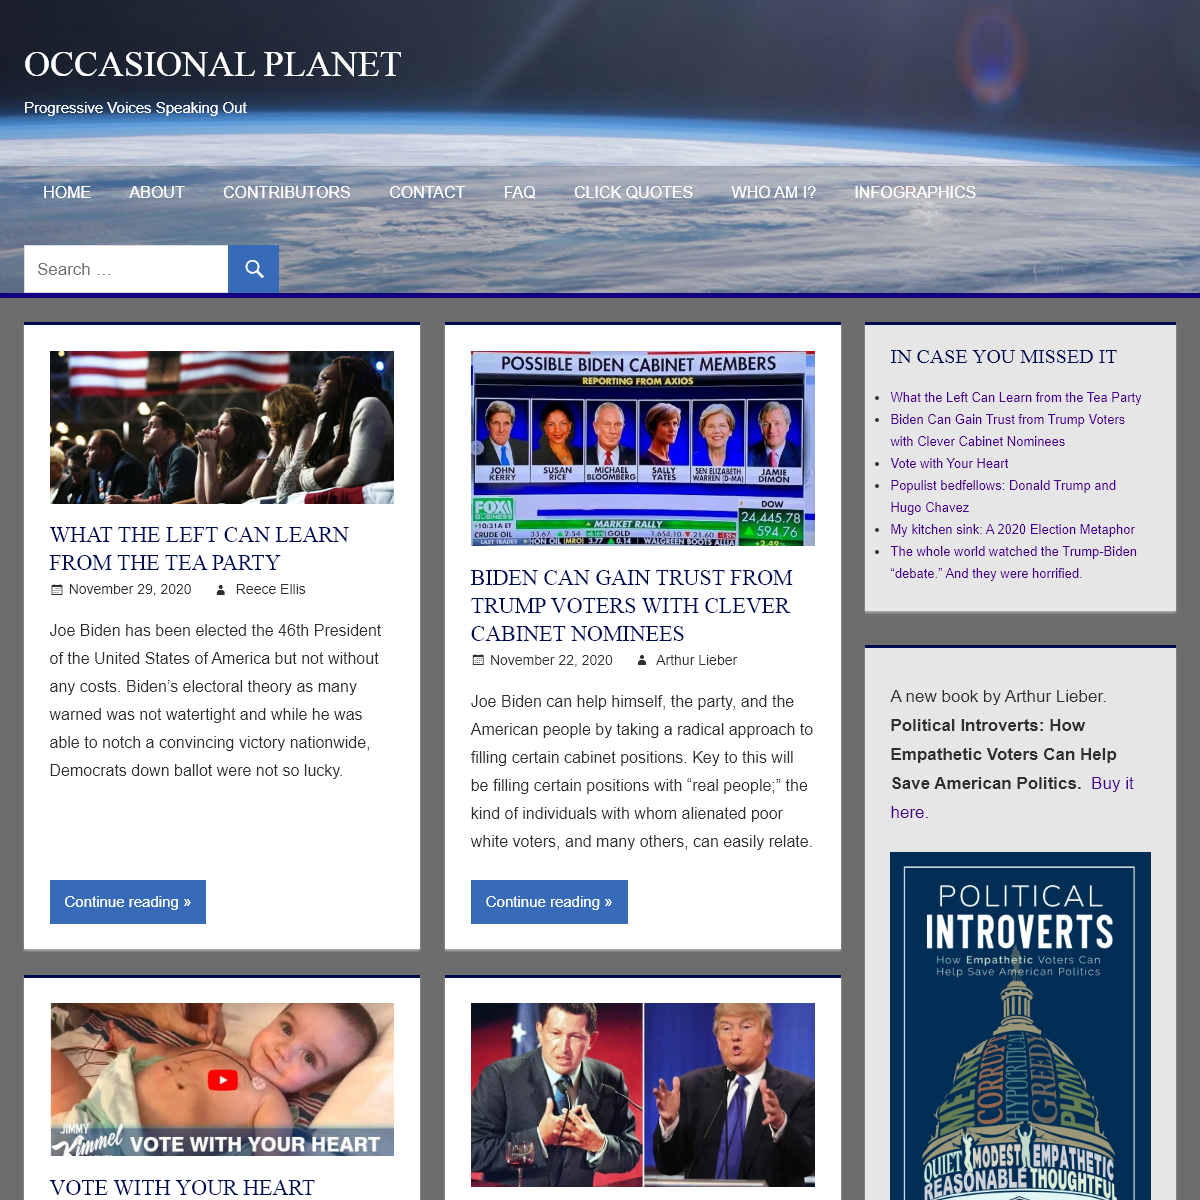 Occasional Planet - Progressive Voices Speaking Out